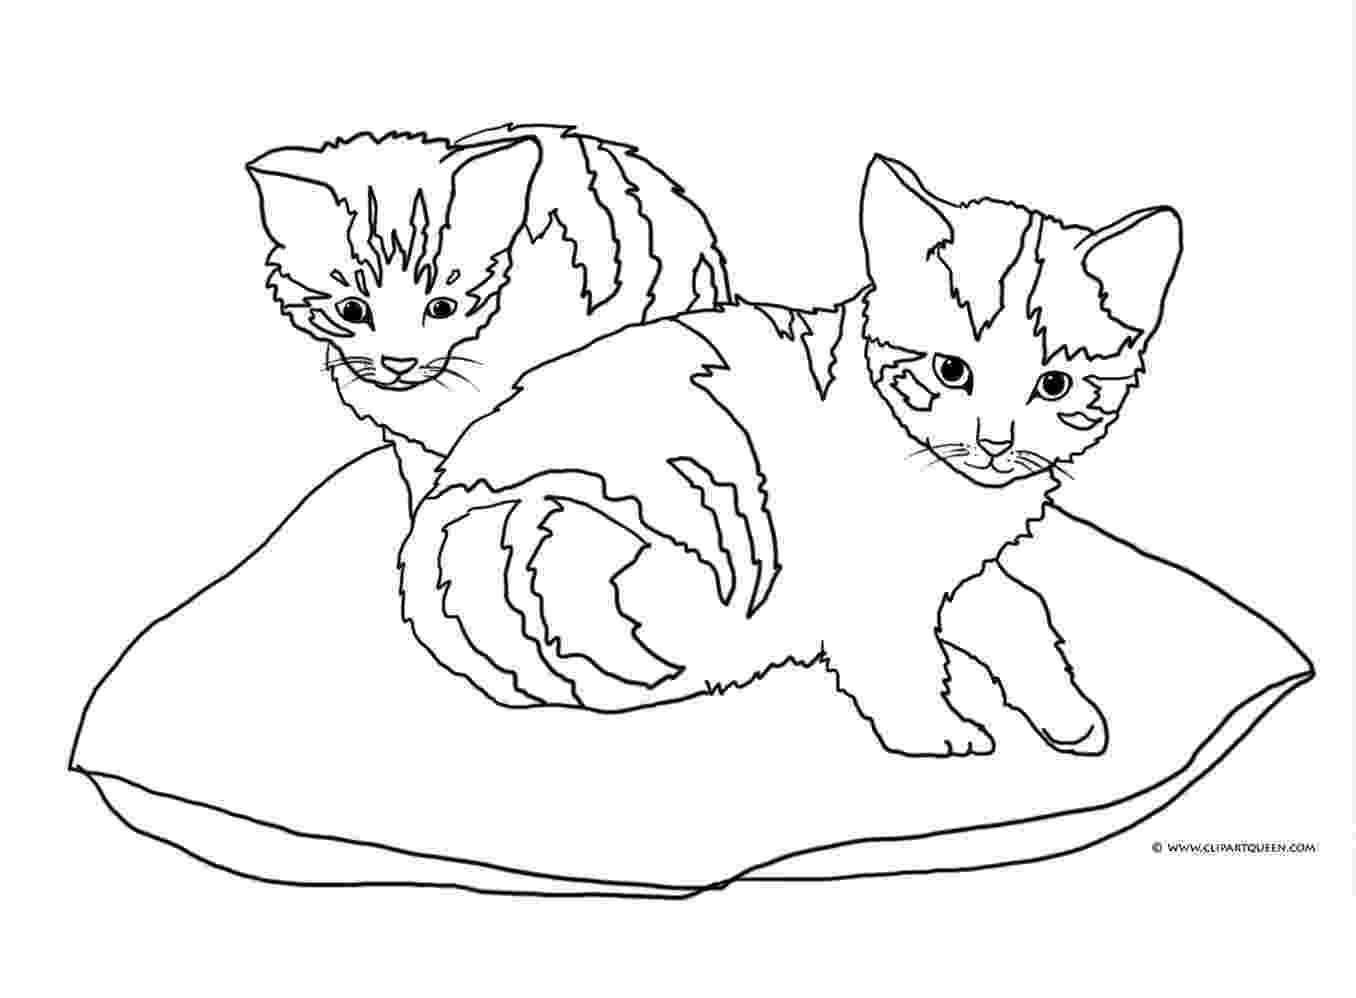 kitten color pages cat color pages printable cat coloring sheets animal kitten pages color